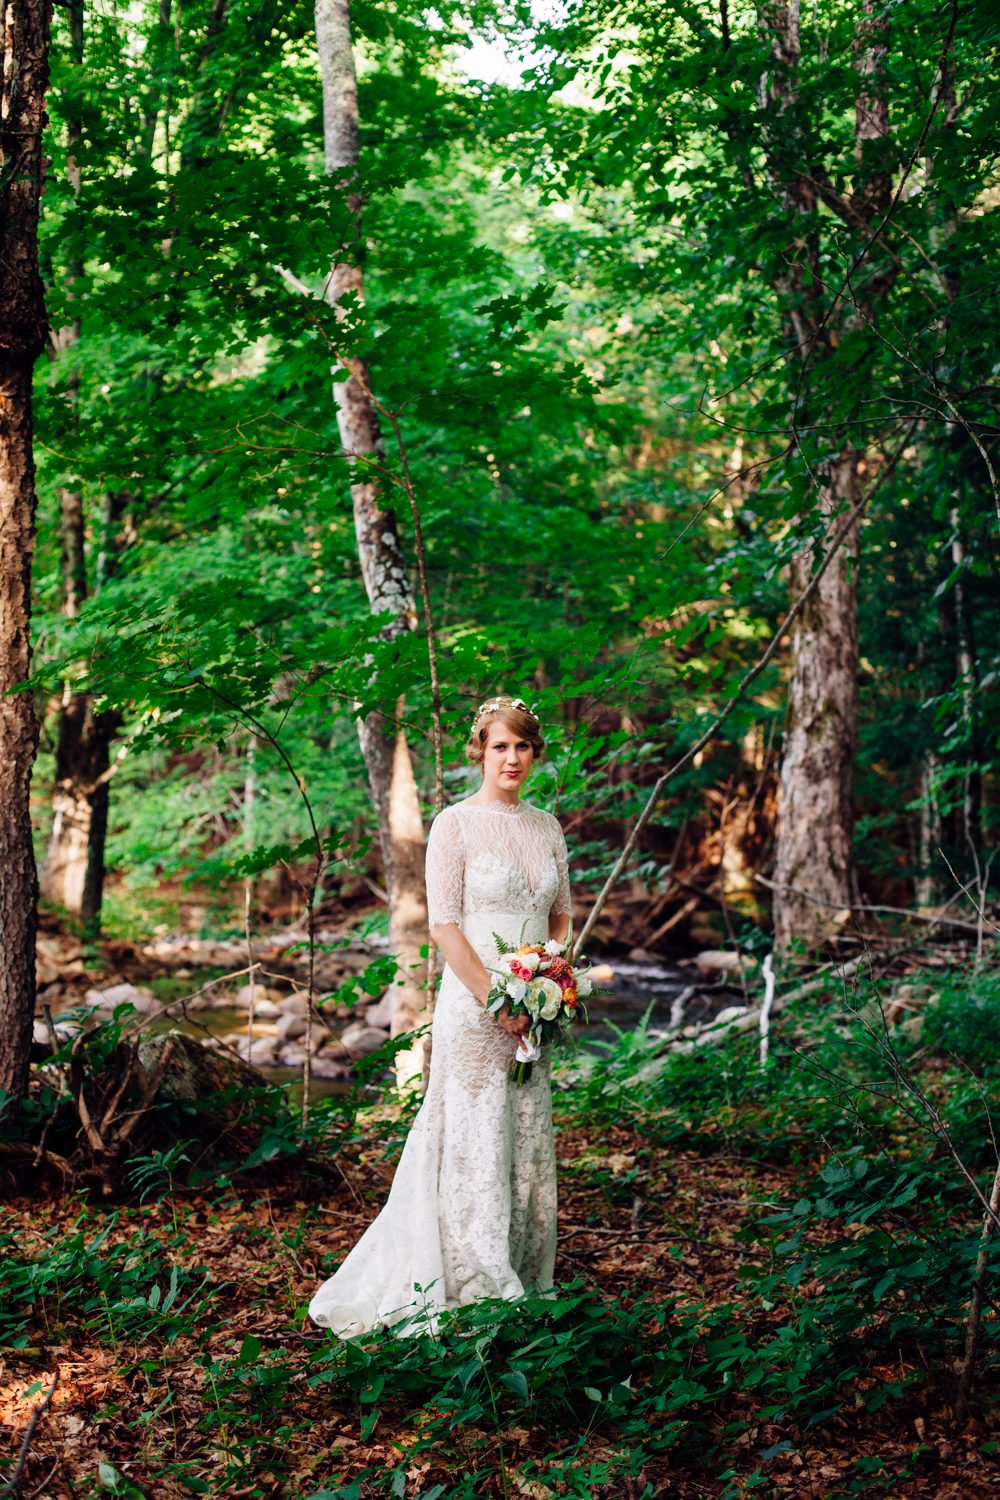 A bride stands in the Adirondack woods